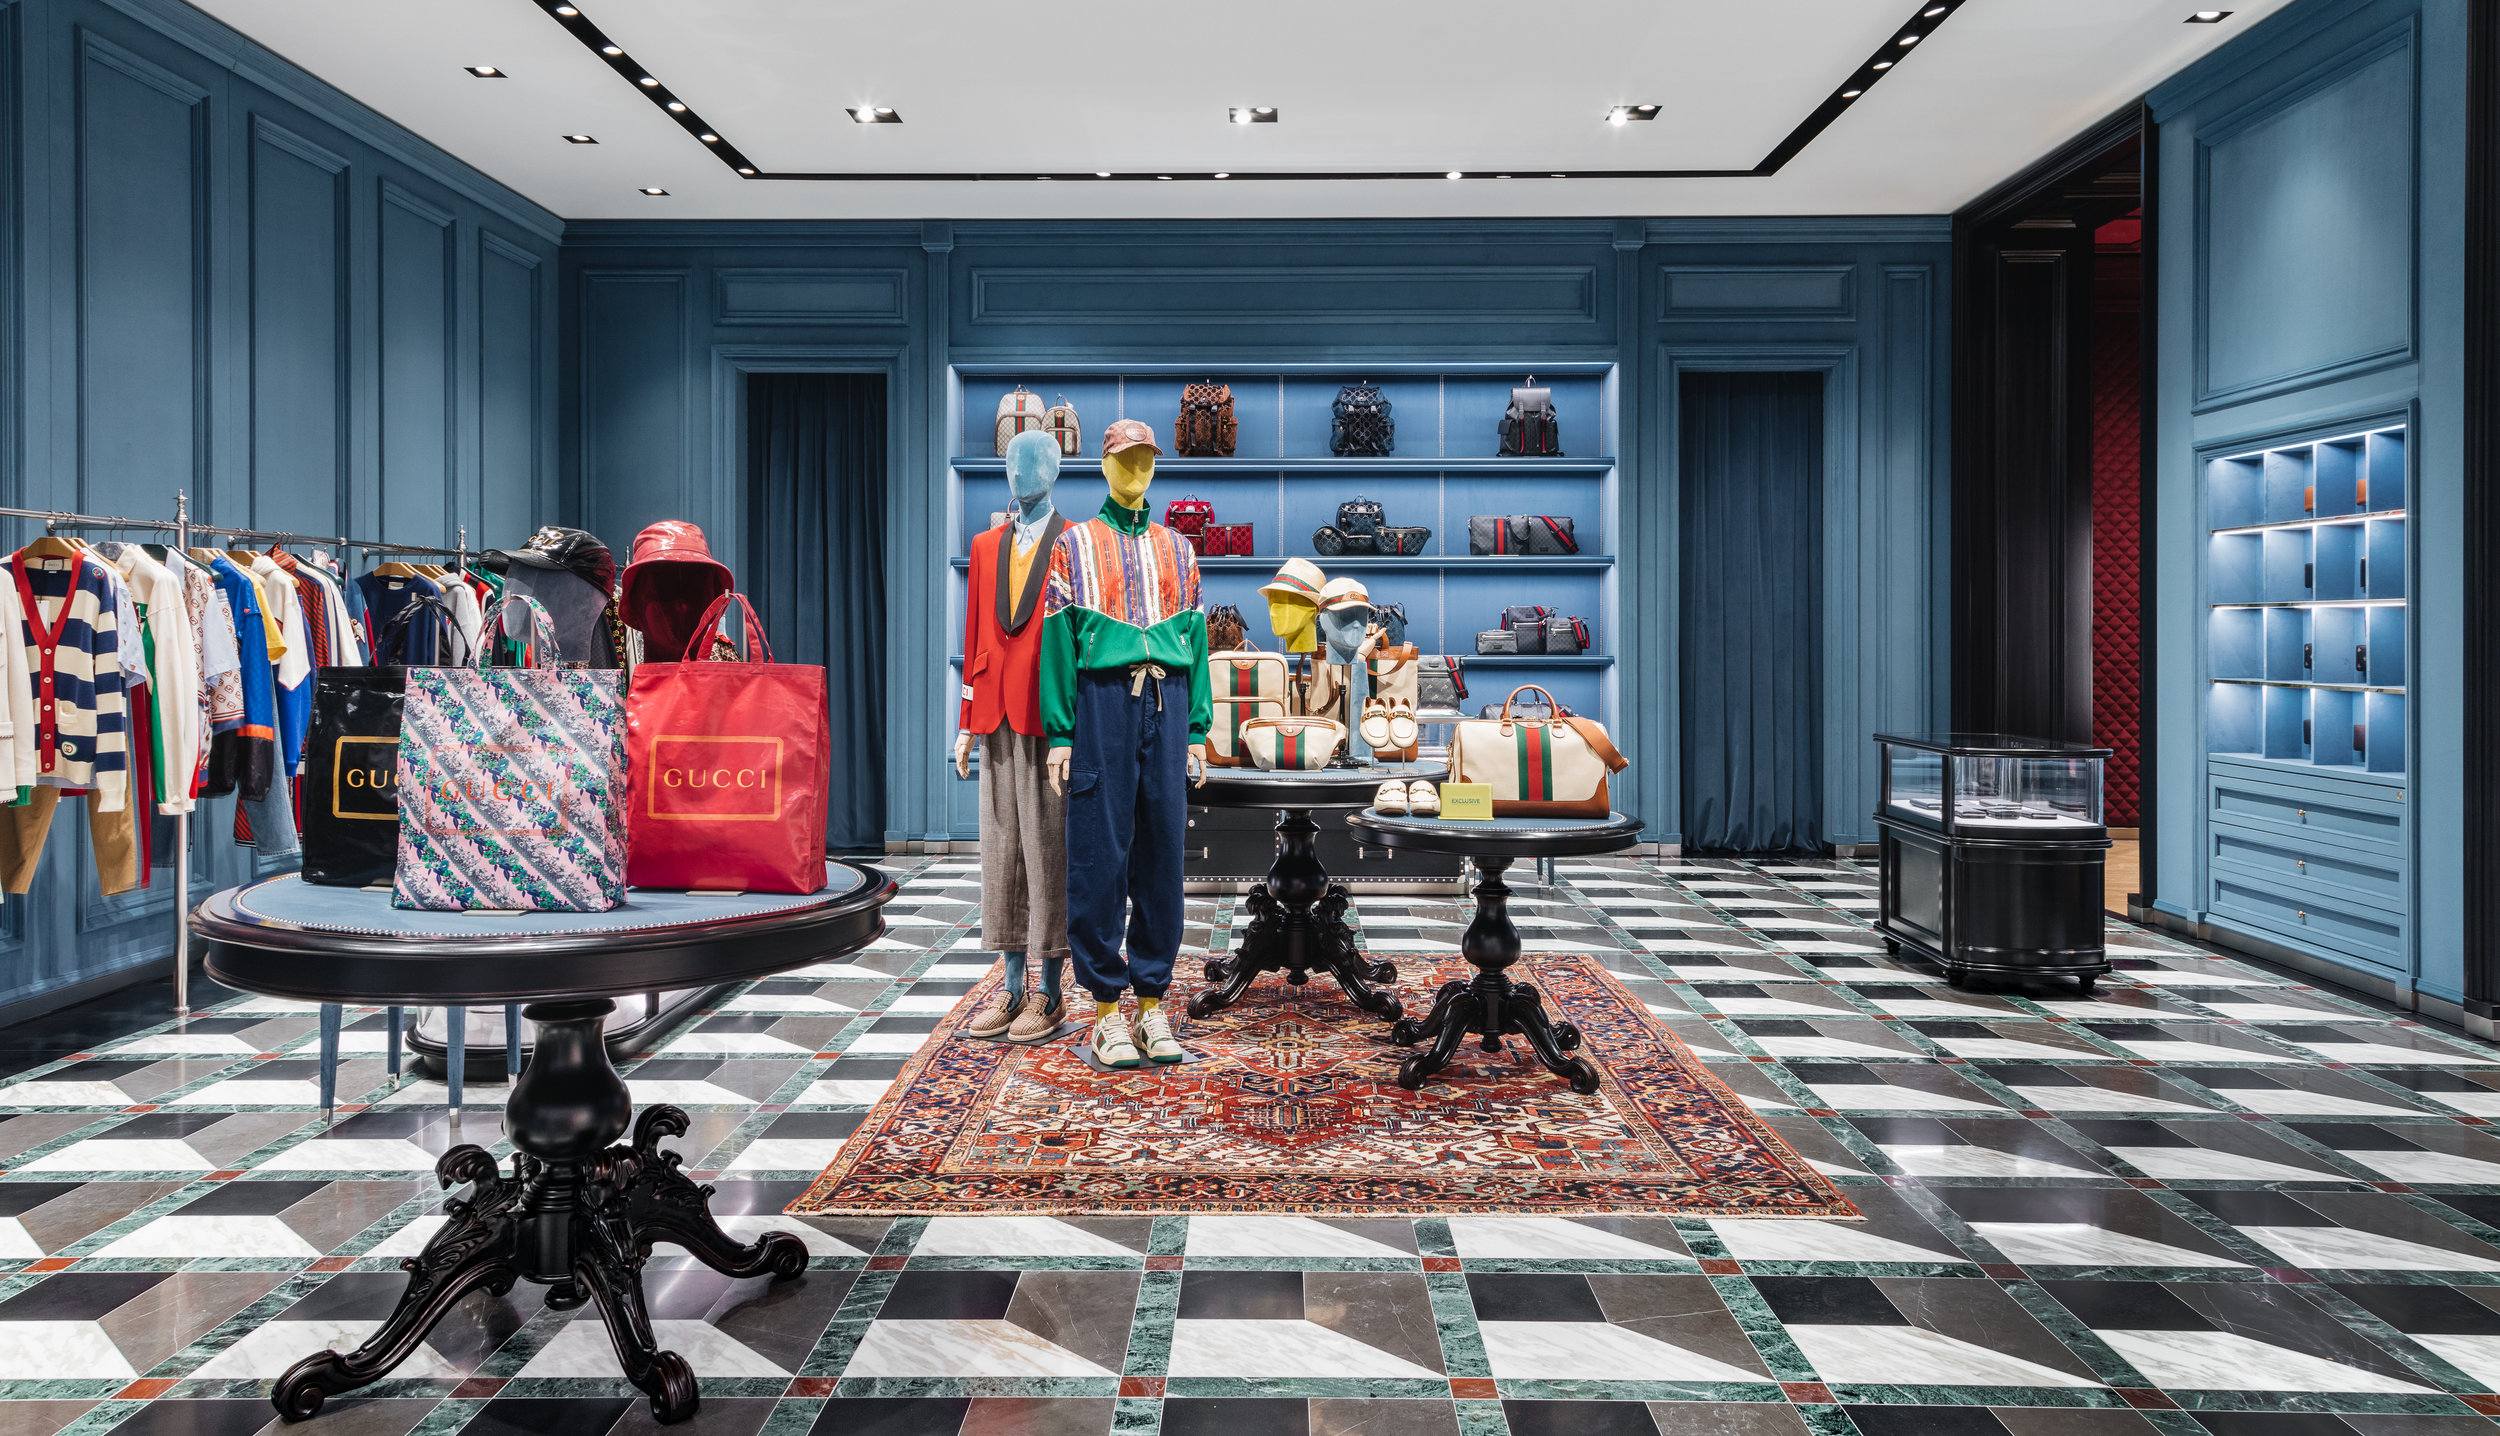 Men's section, photo taken from entryway into Holt Renfrew. Photo: Gucci